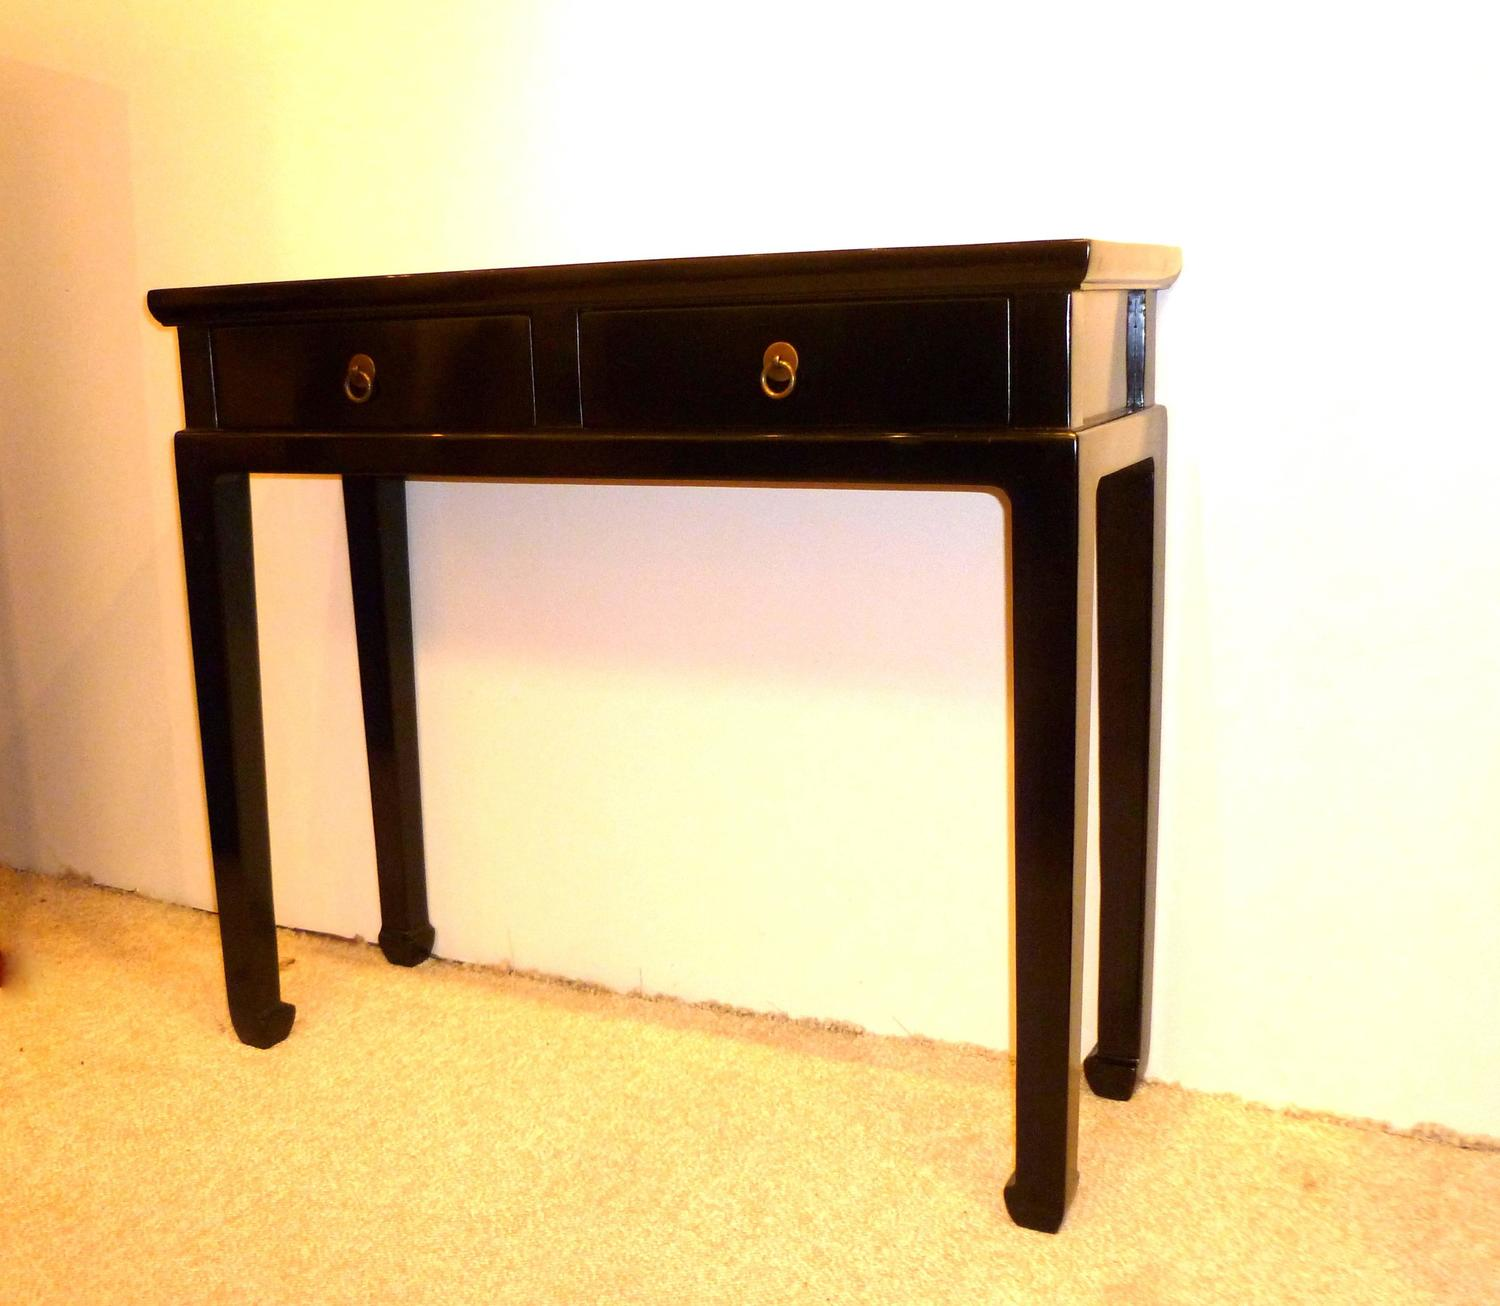 Fine Black Lacquer Console Tables With Two Drawers For